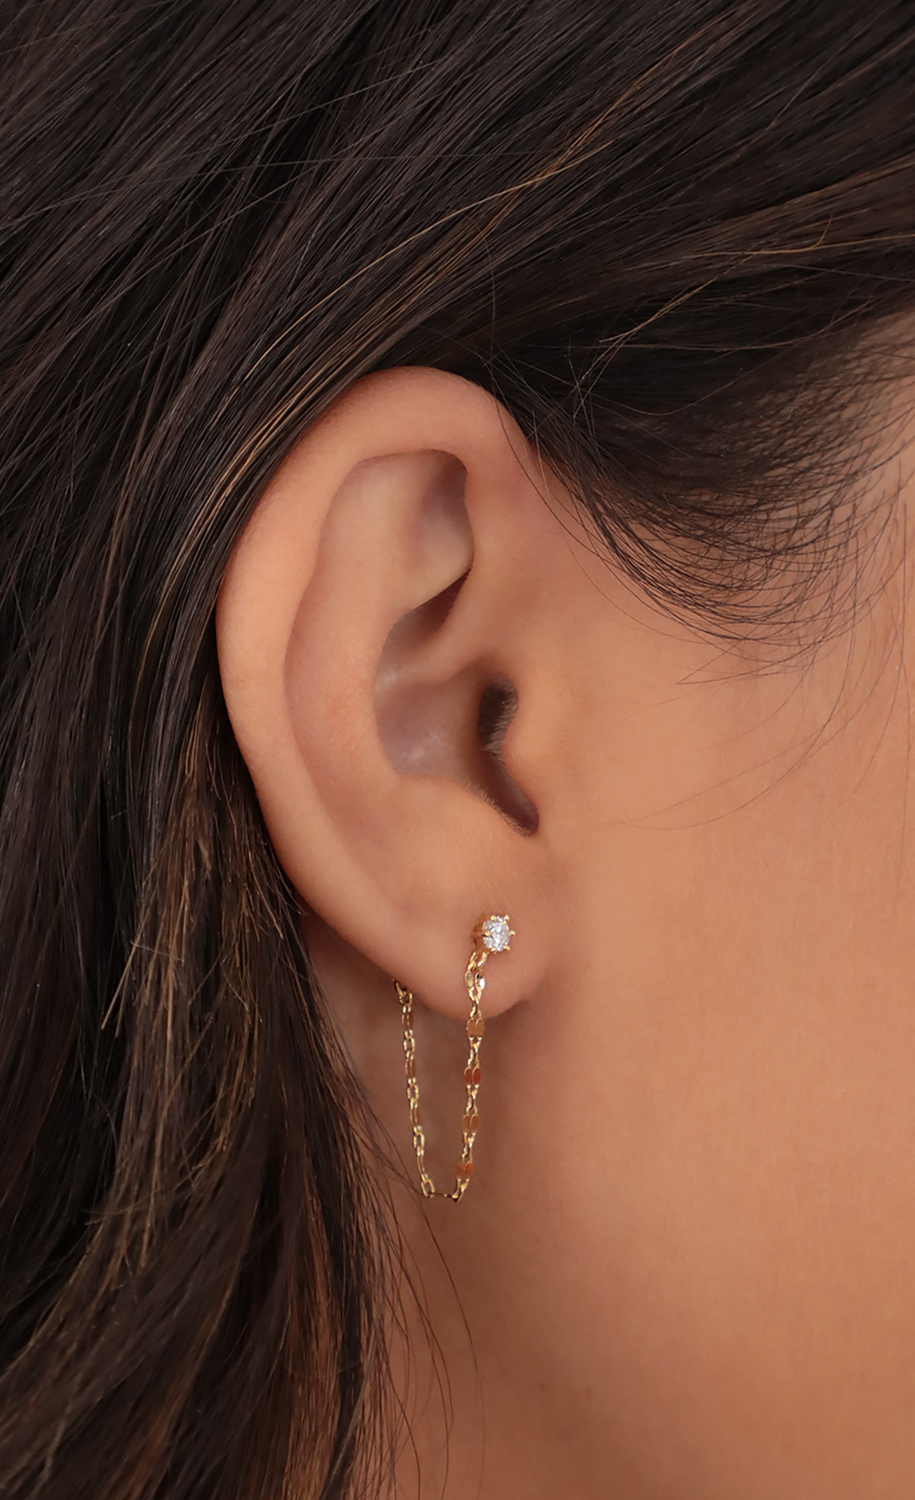 Crystal Chain Stud Earring in Gold